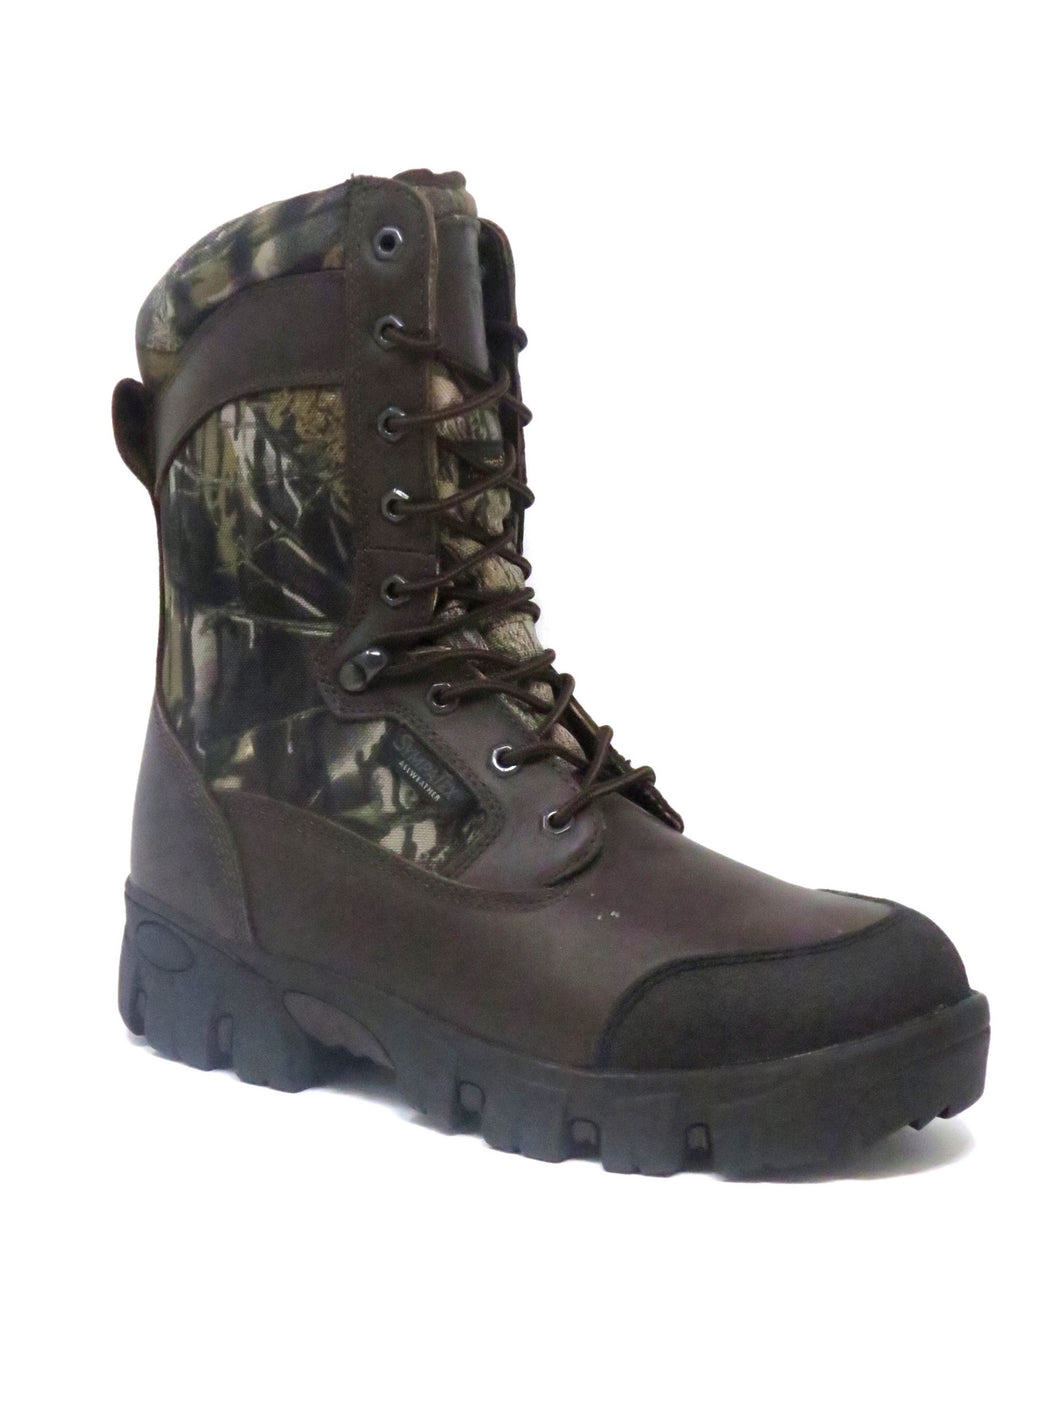 Viper-Tech | Pheasant | Hunting Boot | Camo